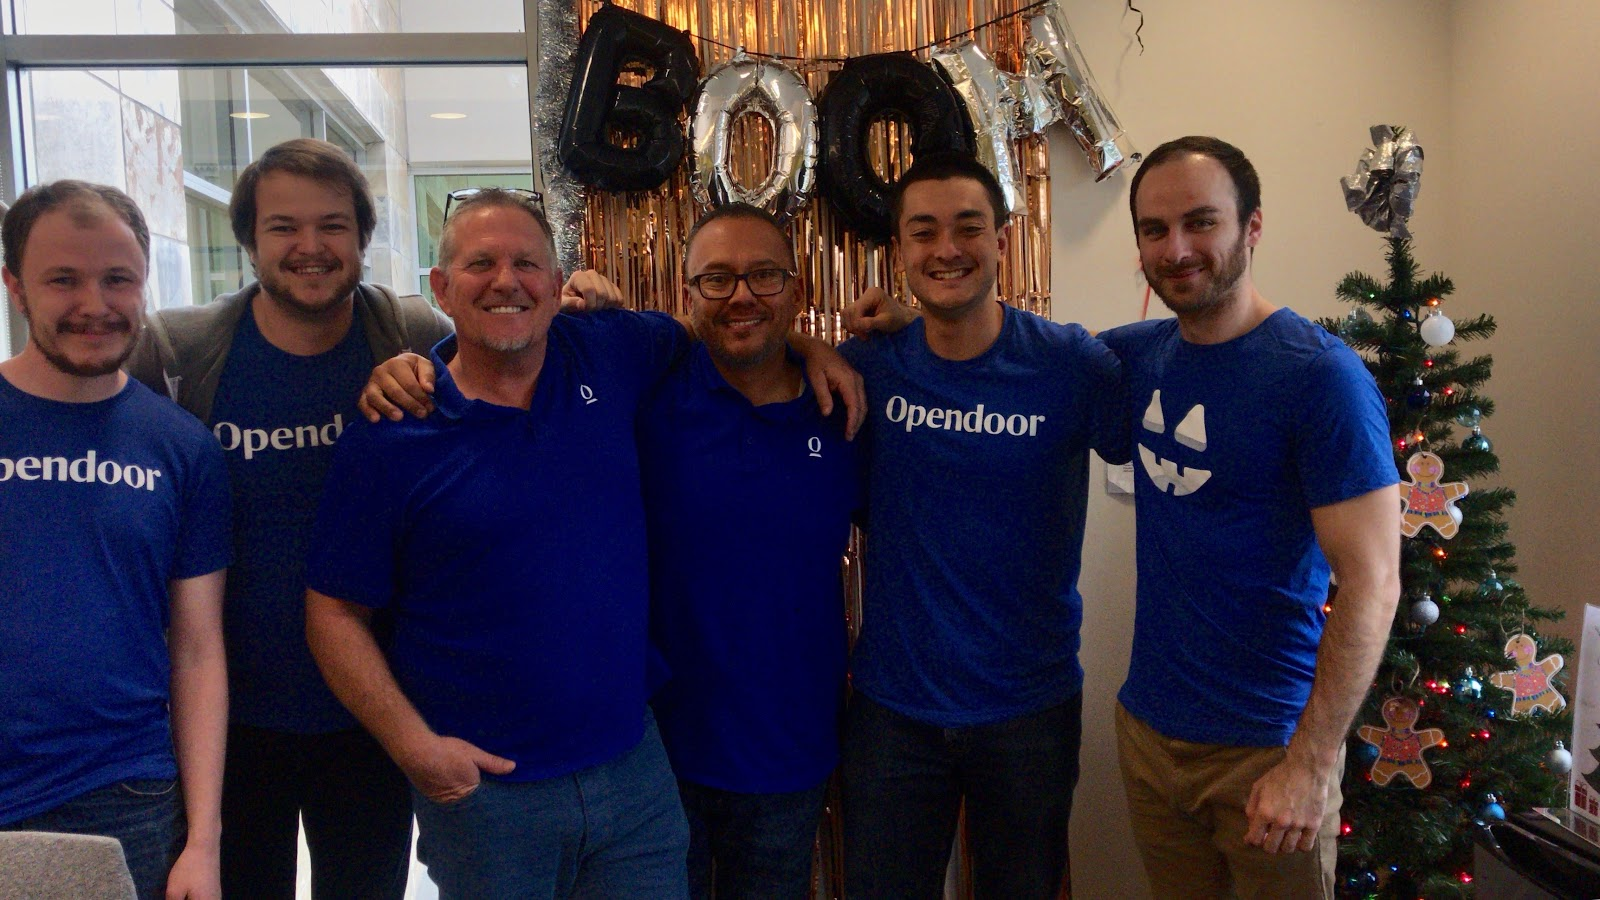 Opendoor launches in Inland Empire and Riverside